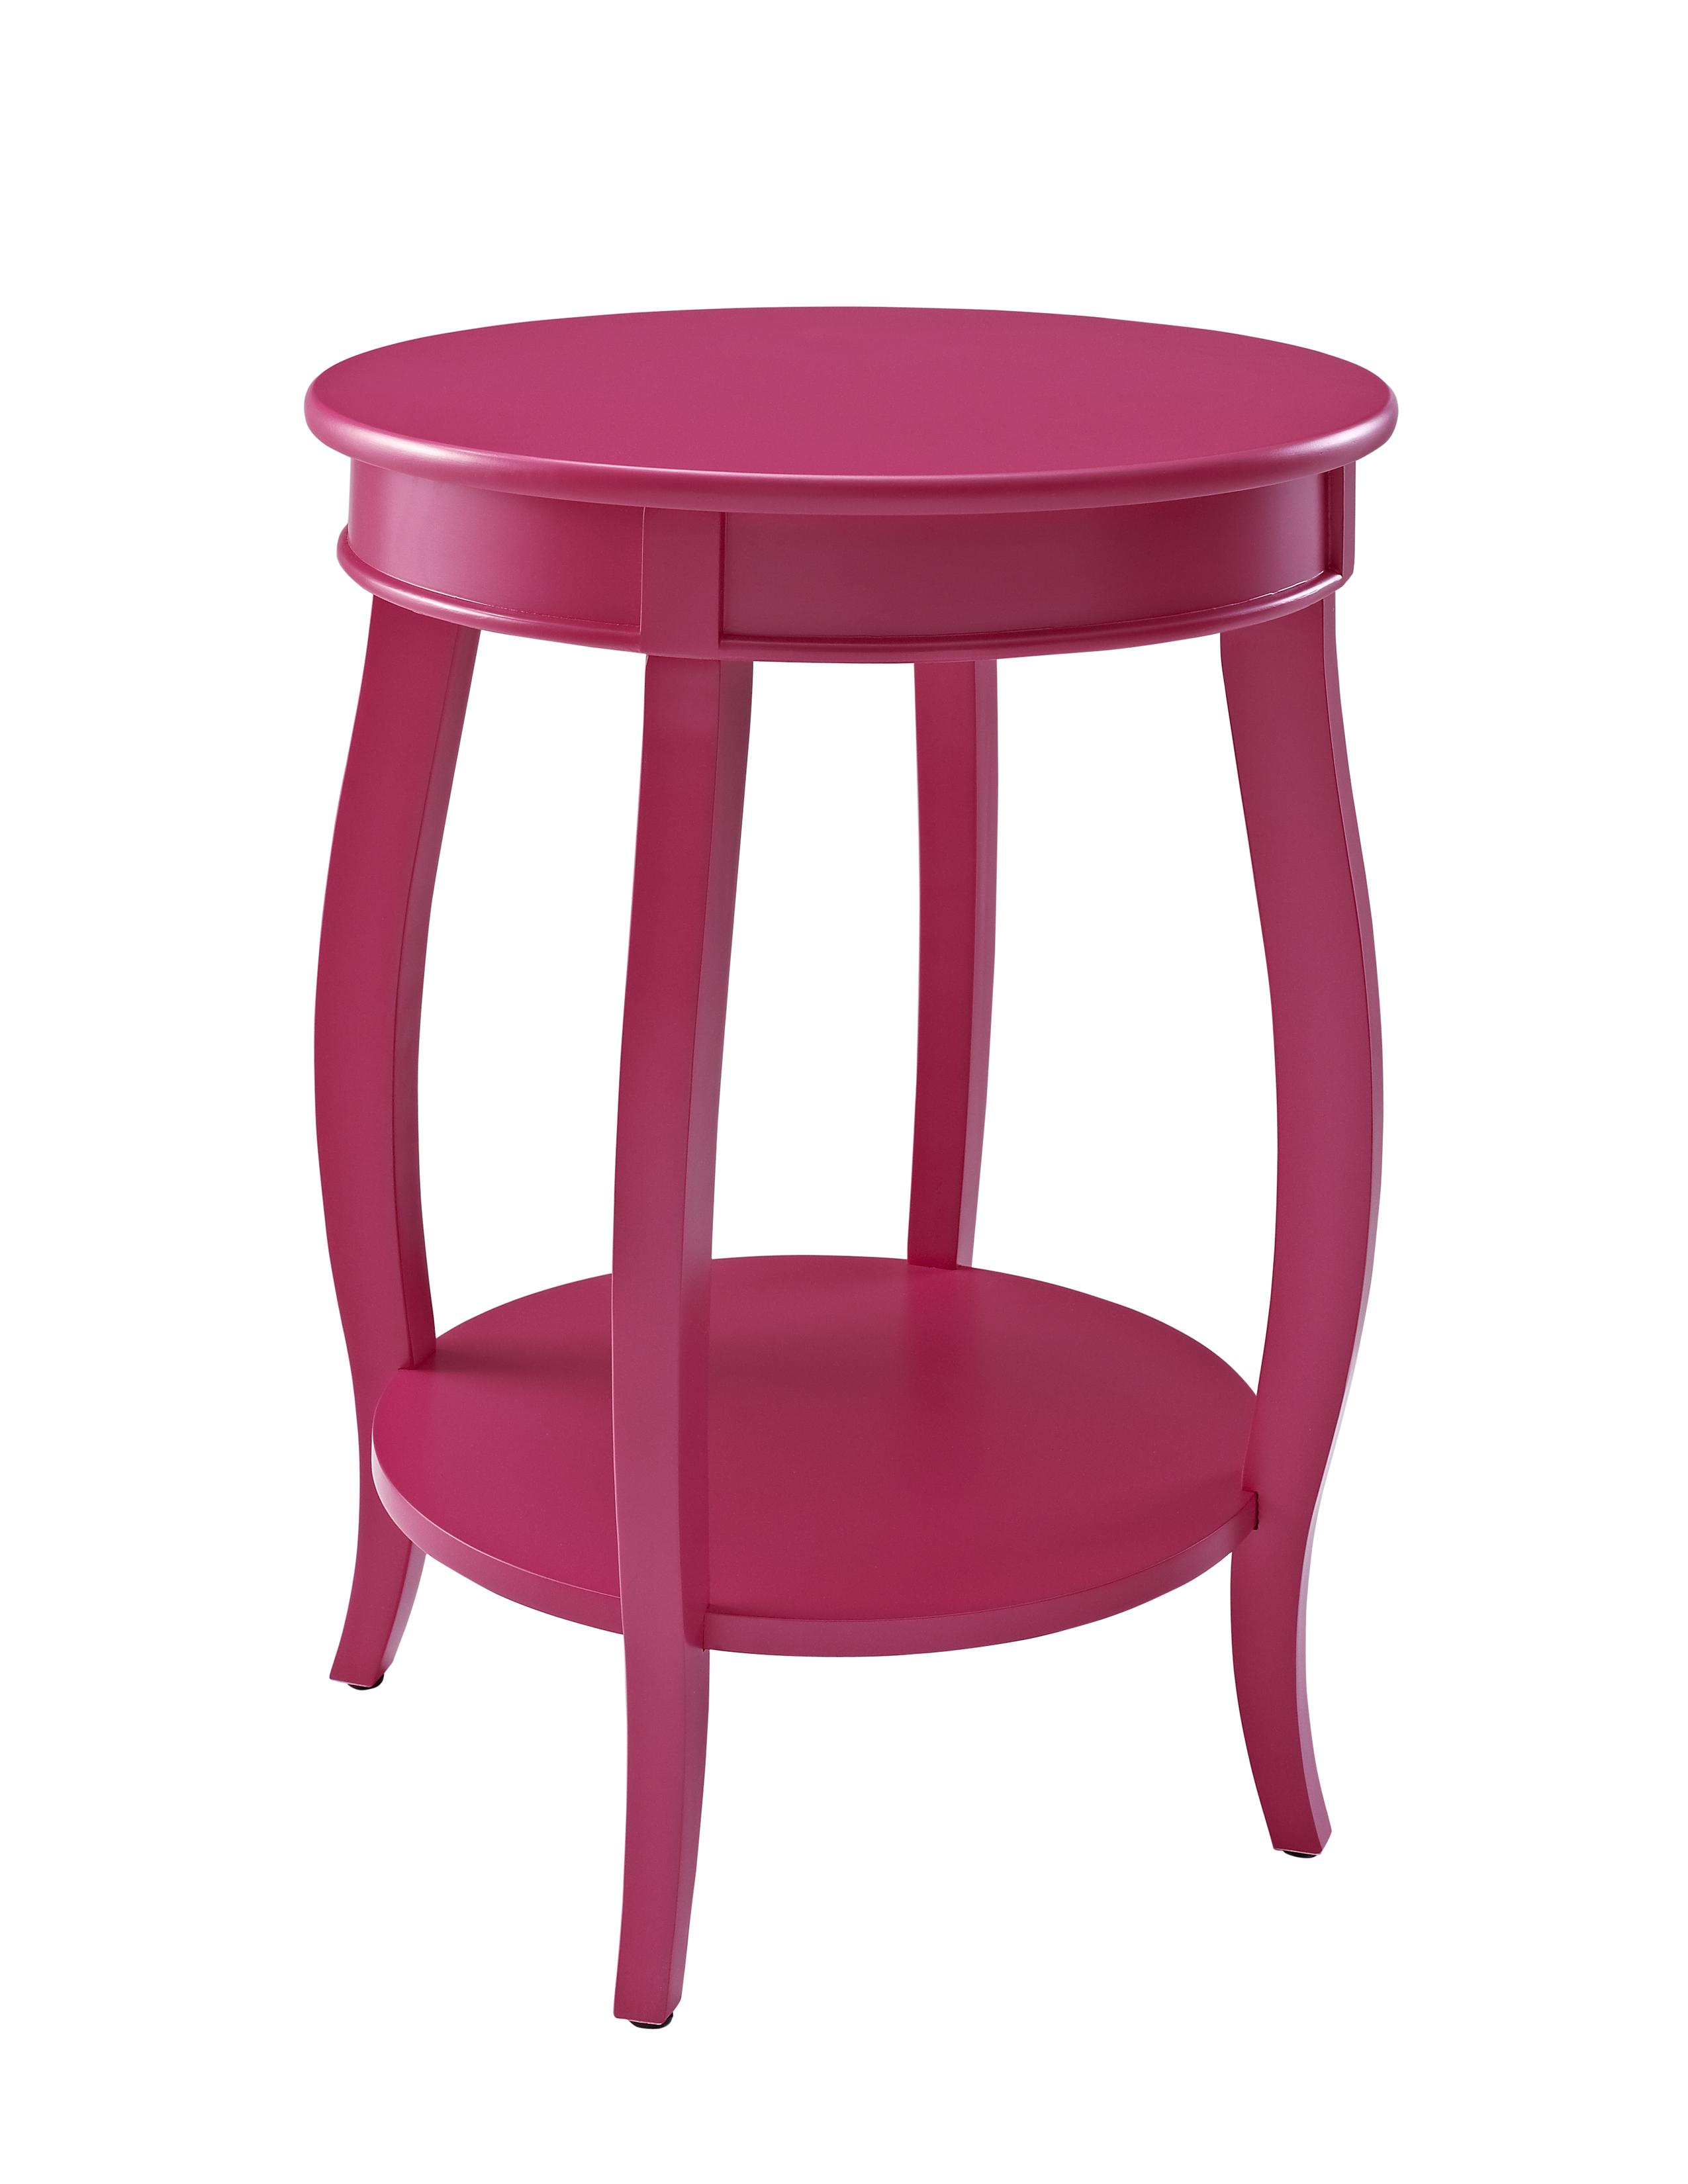 powell accent tables round table shelf fmg local home products color room essentials bath and beyond registry login ethan allen pineapple chairs reproduction designer furniture